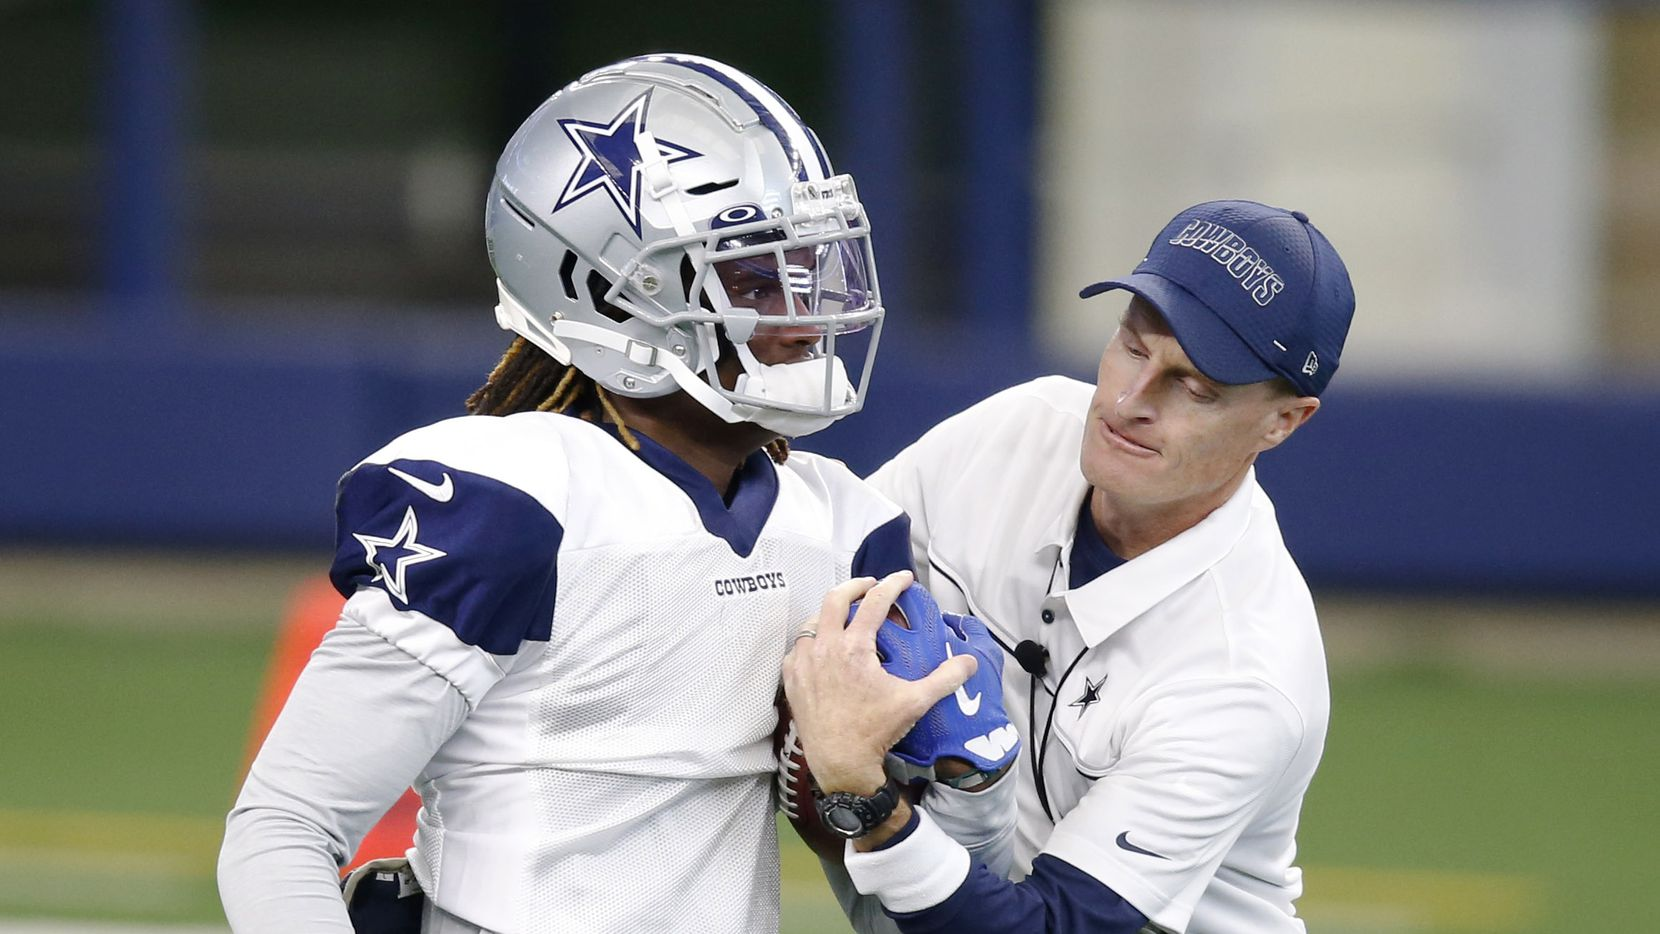 Dallas Cowboys special teams coordinator John Fassel attempts to take the ball away from Dallas Cowboys wide receiver CeeDee Lamb (88) in practice on Cowboys Night during training camp at AT&T Stadium in Arlington, Texas on Sunday, August 30, 2020.